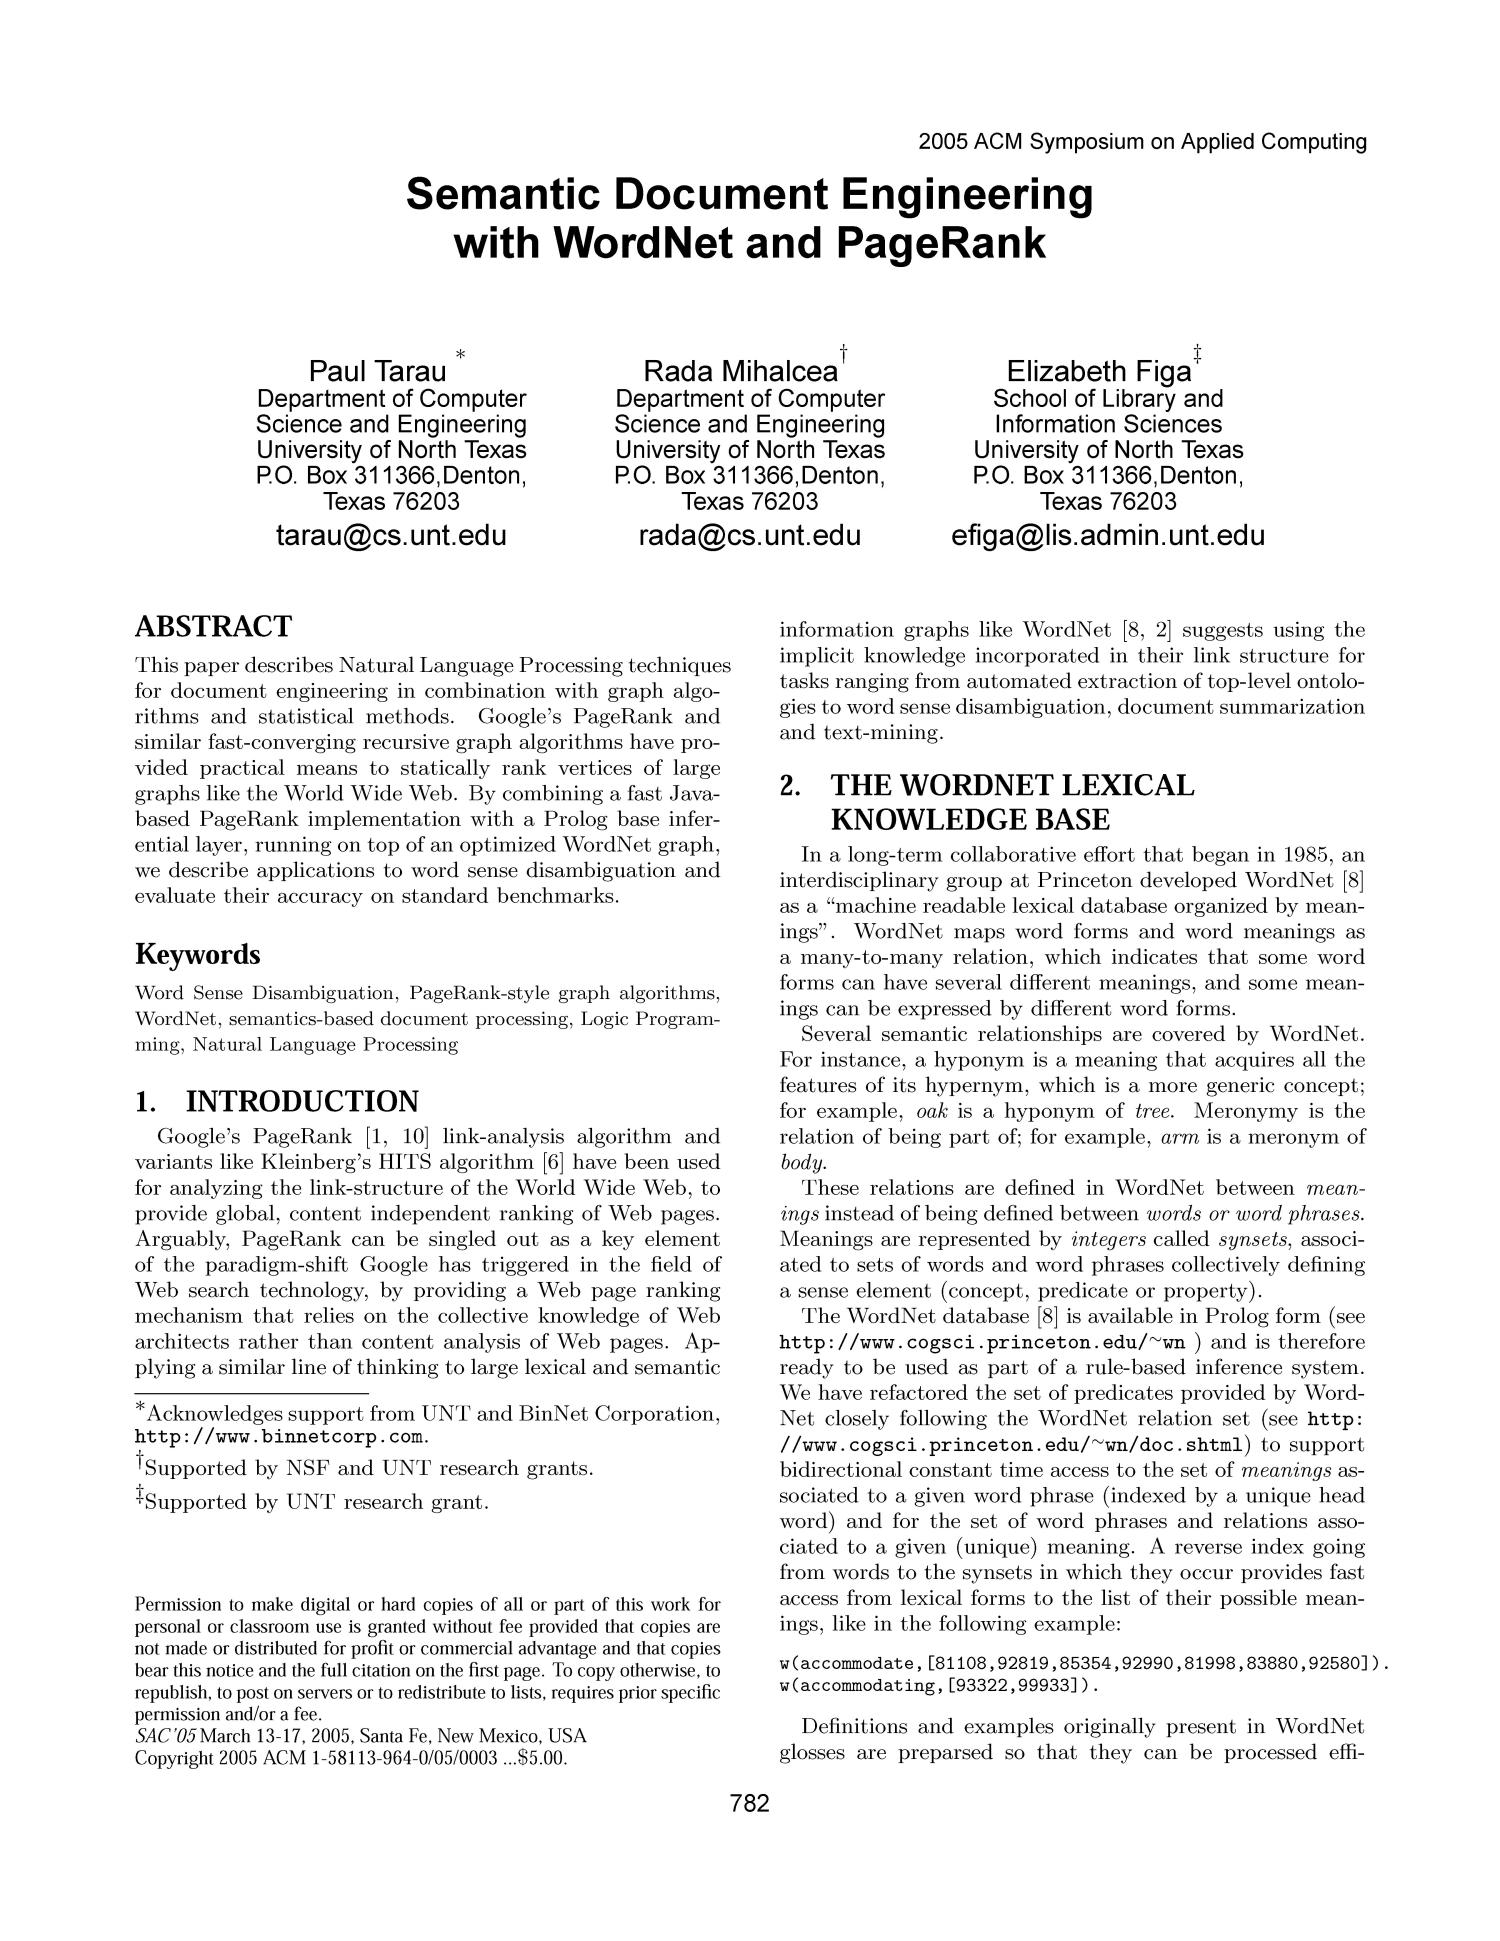 Semantic Document Engineering with WordNet and PageRank - Page 782